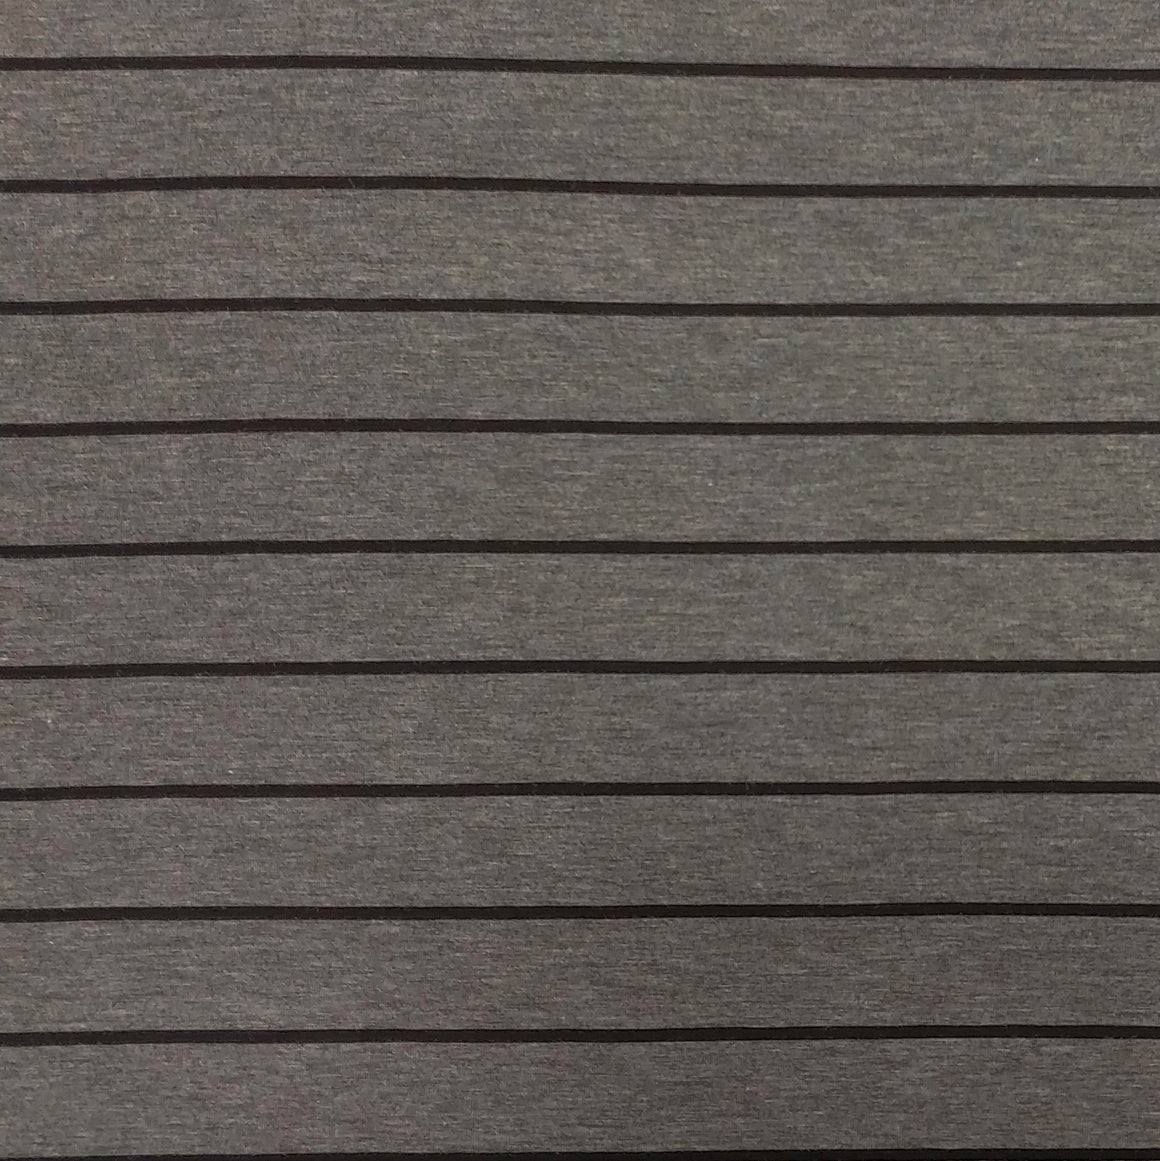 Charcoal and Black Yarn Dyed Stripe Modal Spandex Jersey Knit Fabric, 1 Yard - Raspberry Creek Fabrics